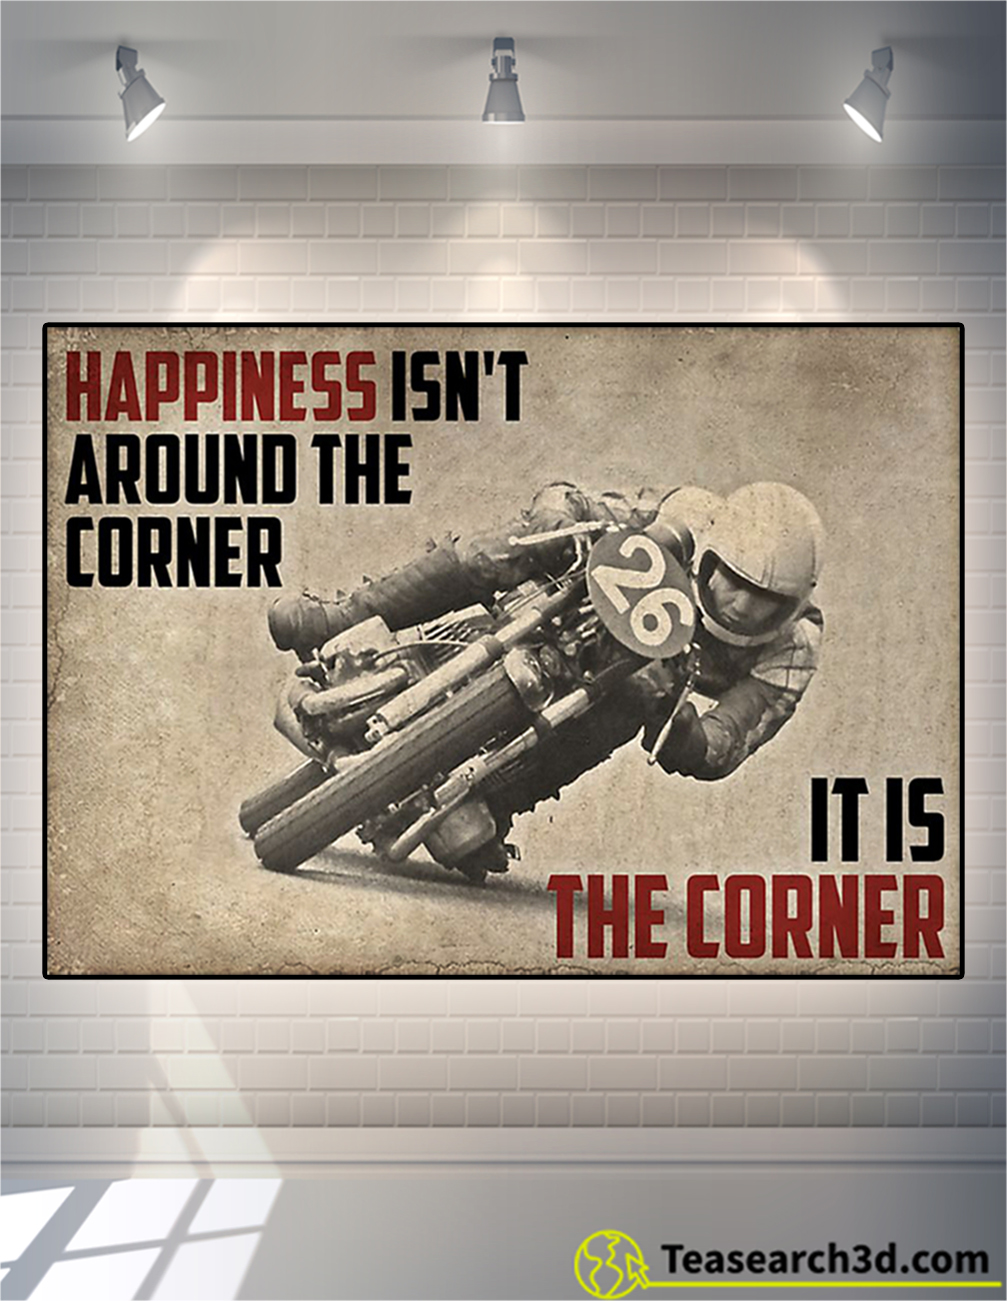 Motorcycles happiness isn't around the corner poster